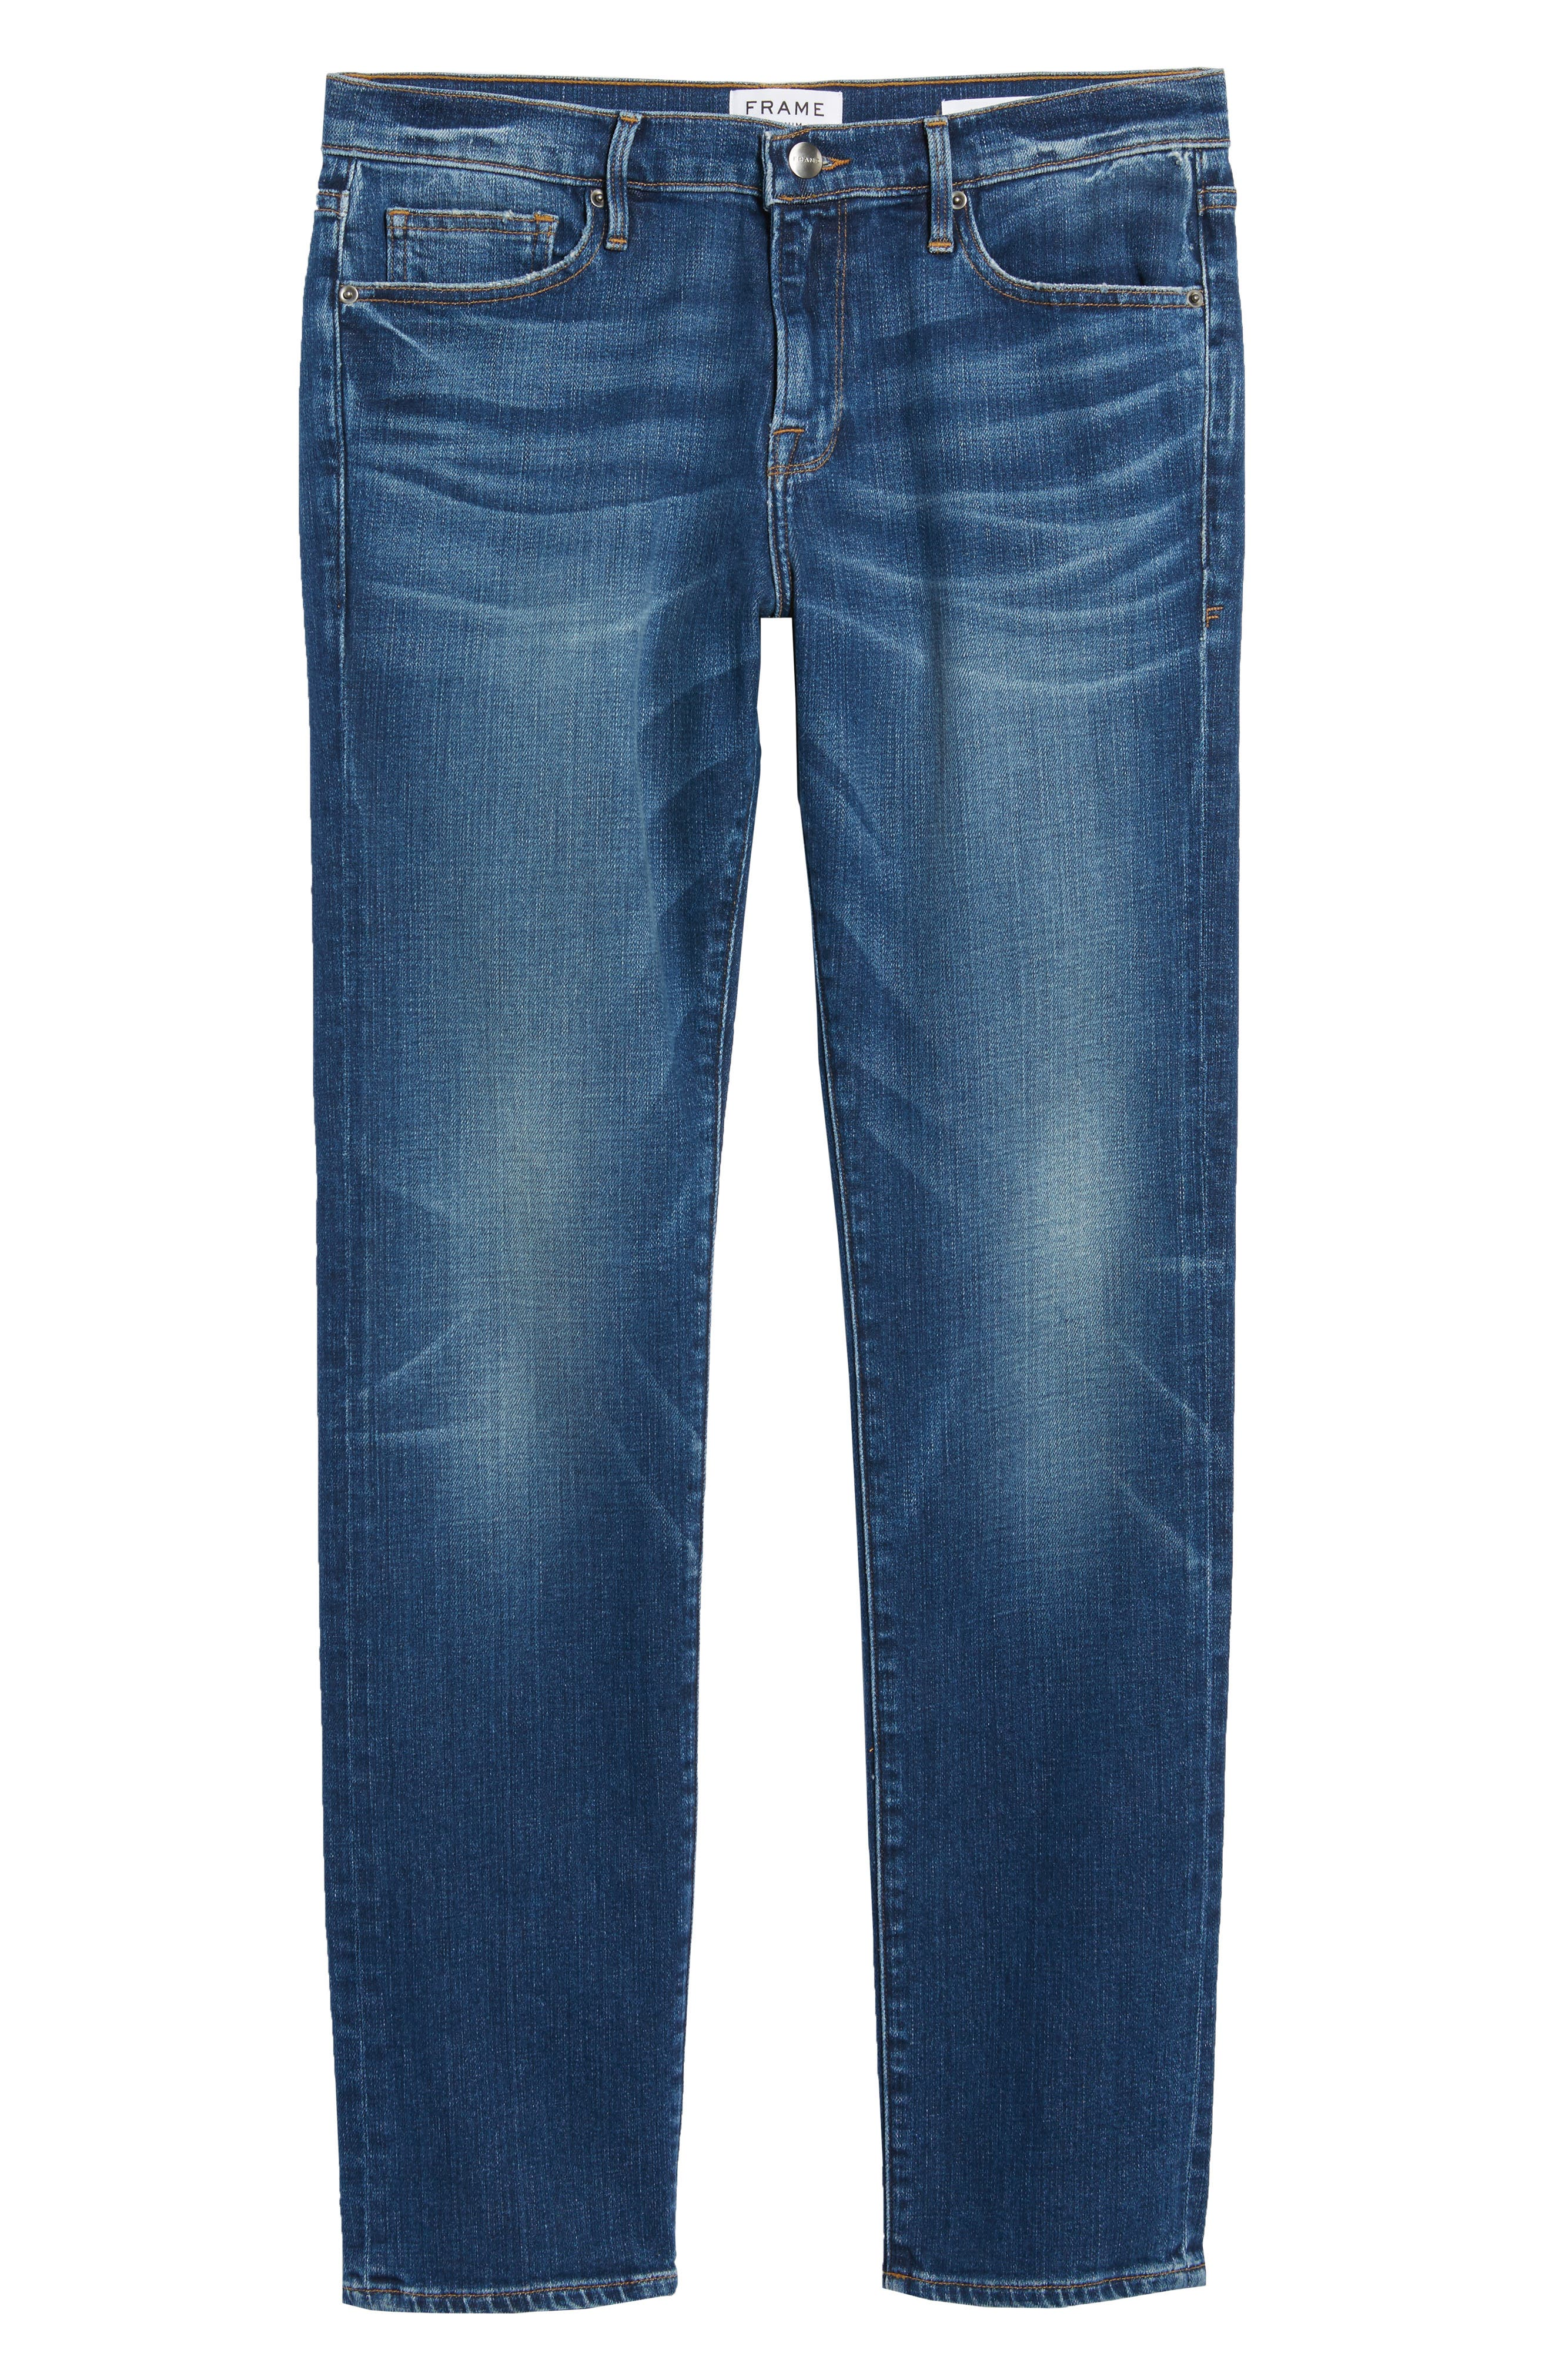 L'Homme Skinny Fit Jeans,                             Alternate thumbnail 6, color,                             Francis